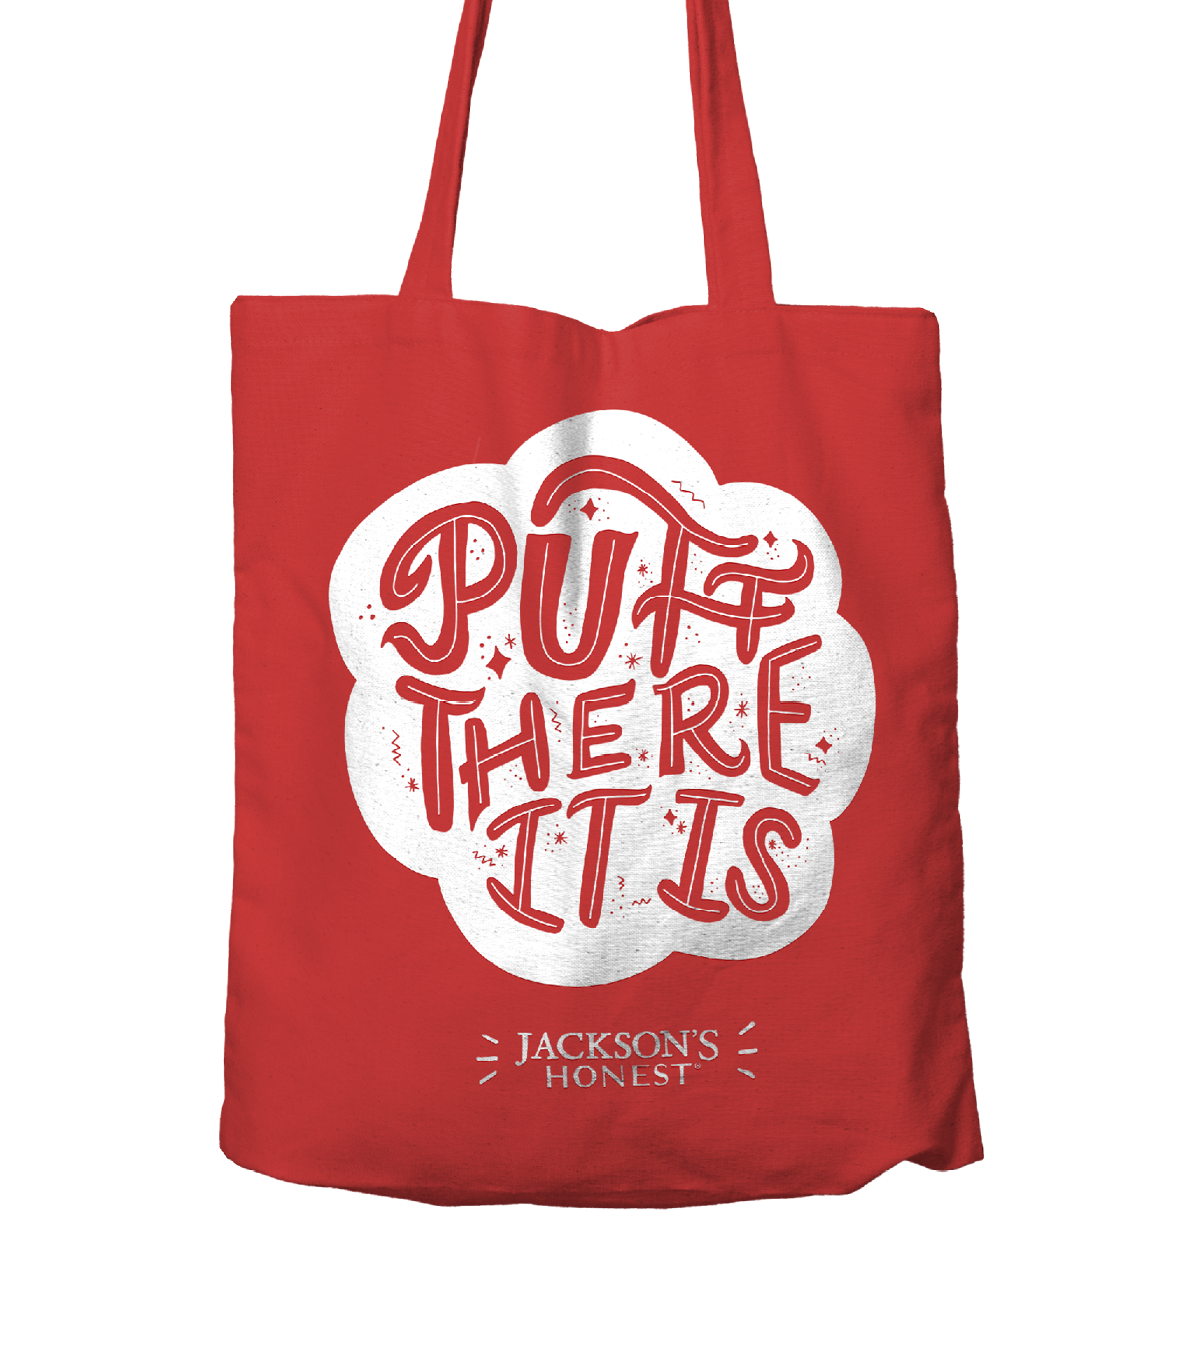 Jackson's Honest Tote by Megan Hillman